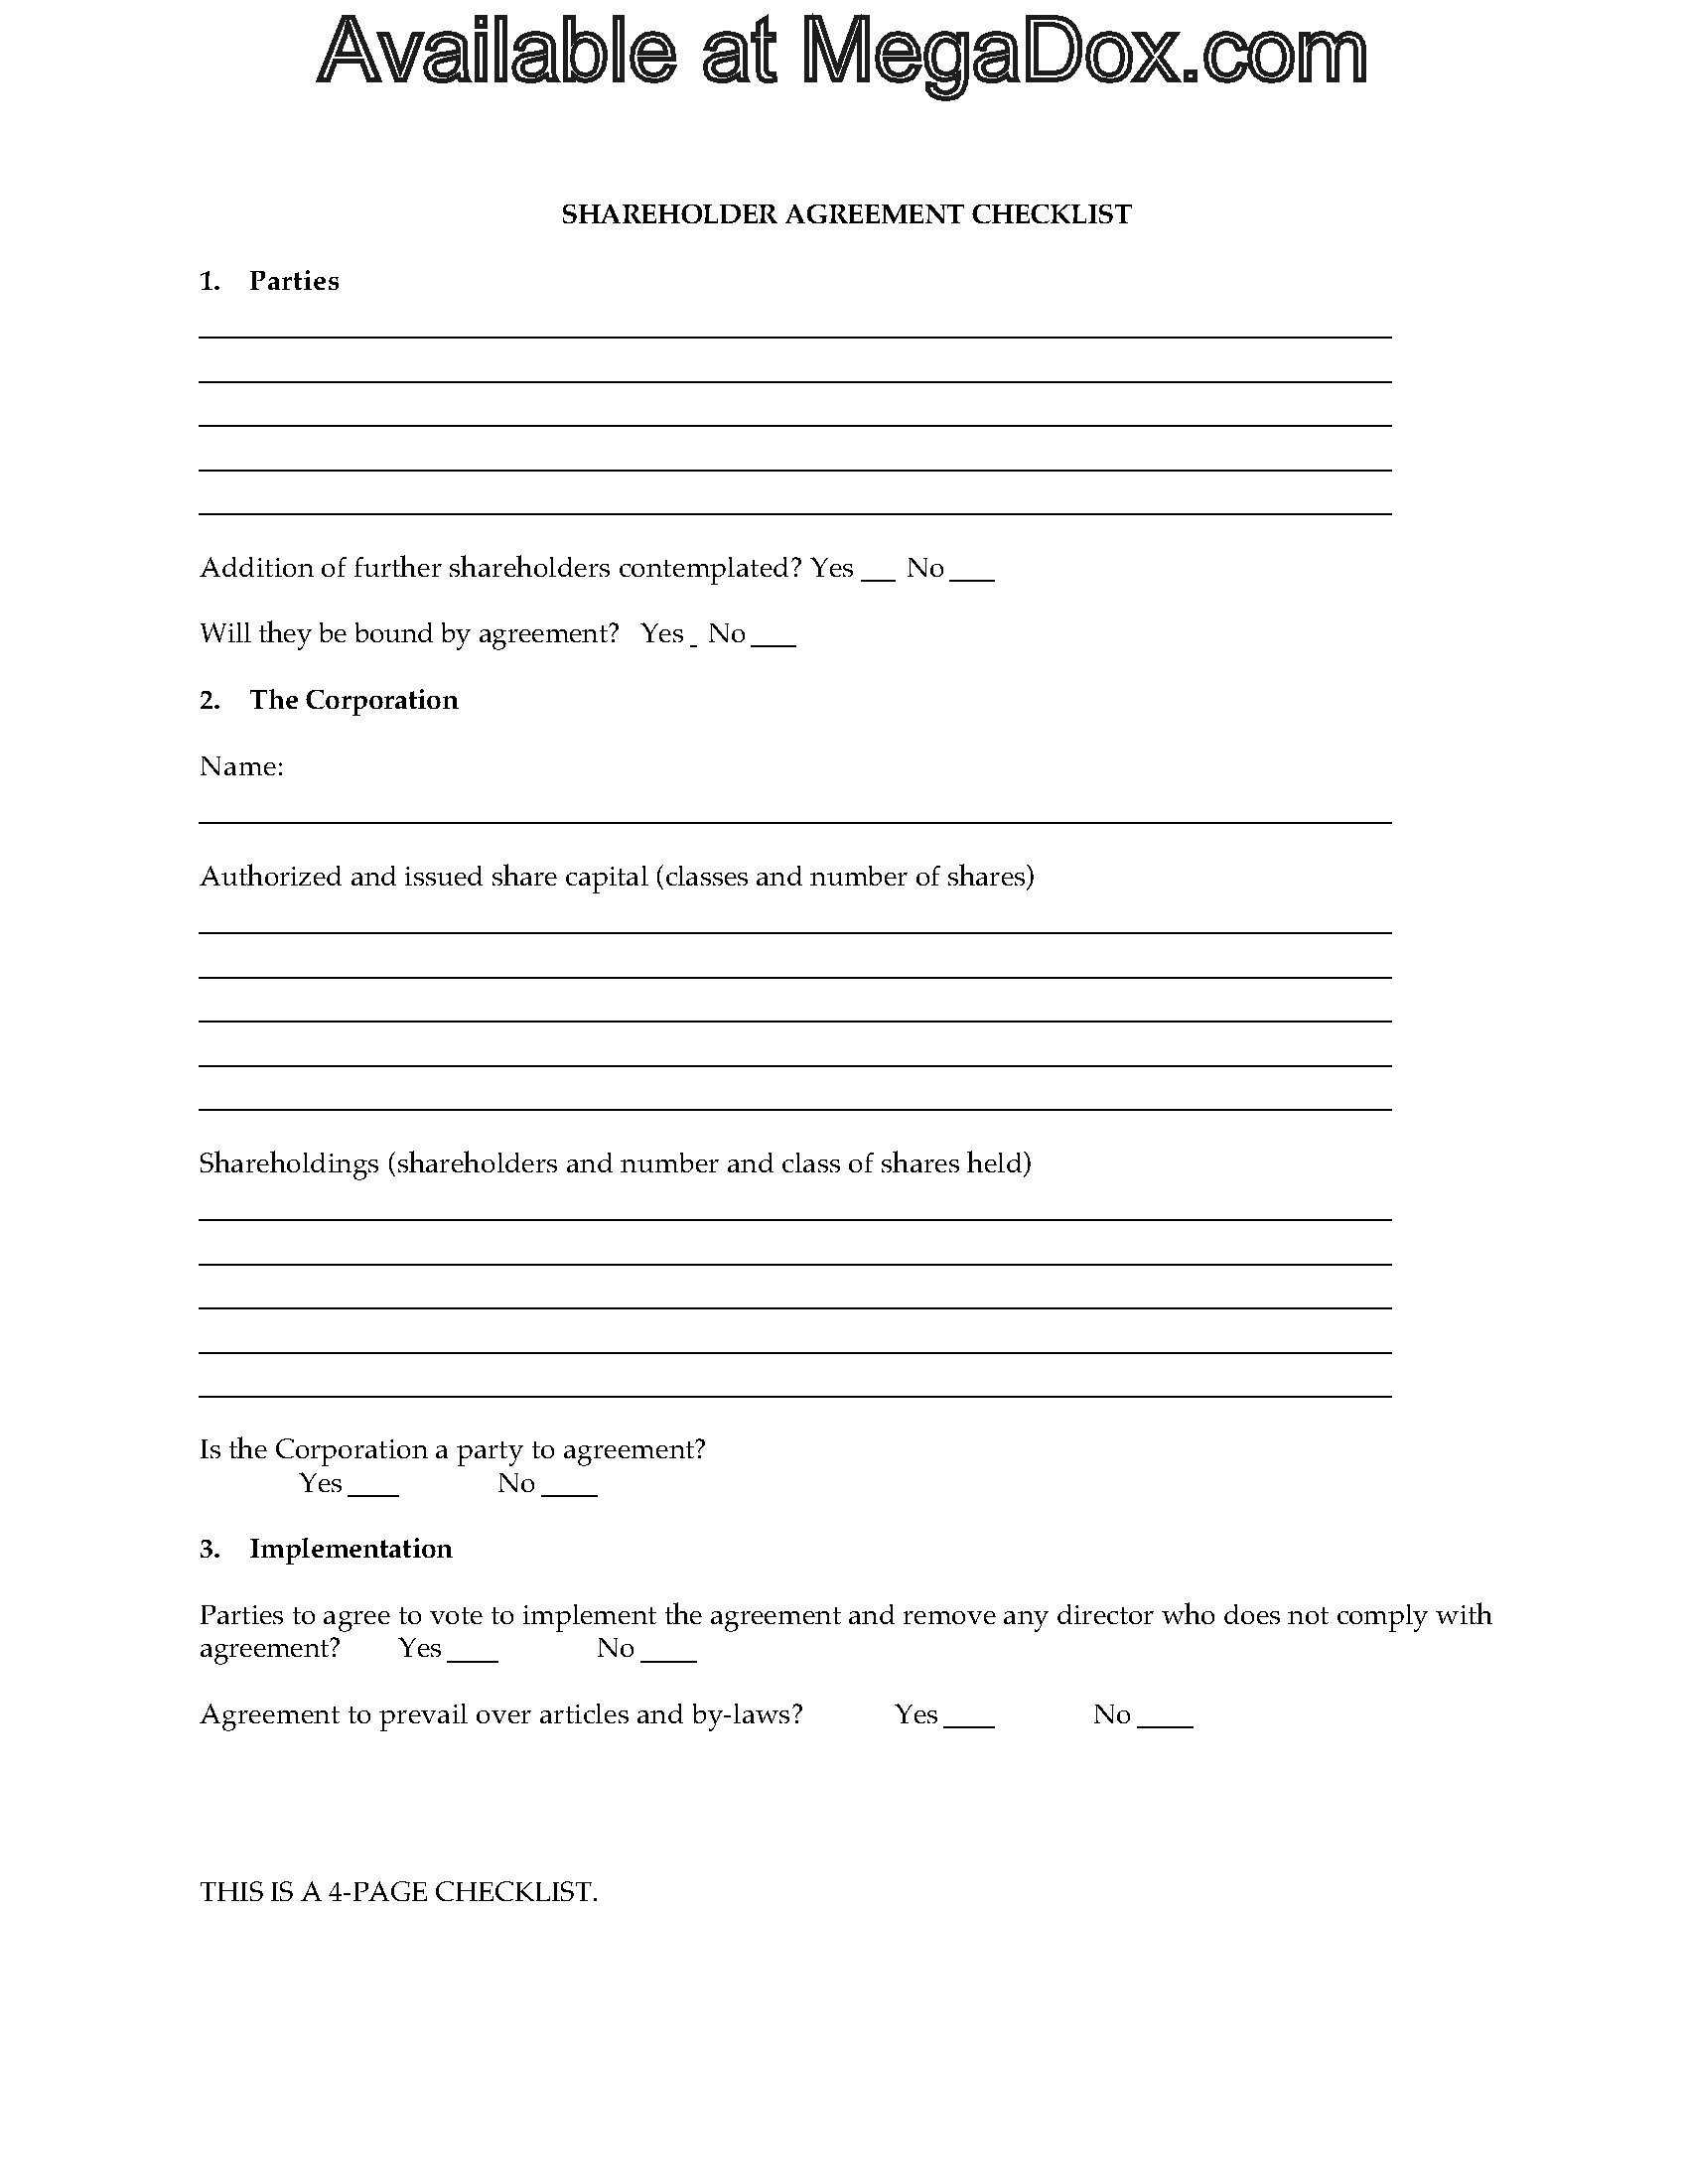 Shareholder Agreement Checklist Legal Forms And Business Templates